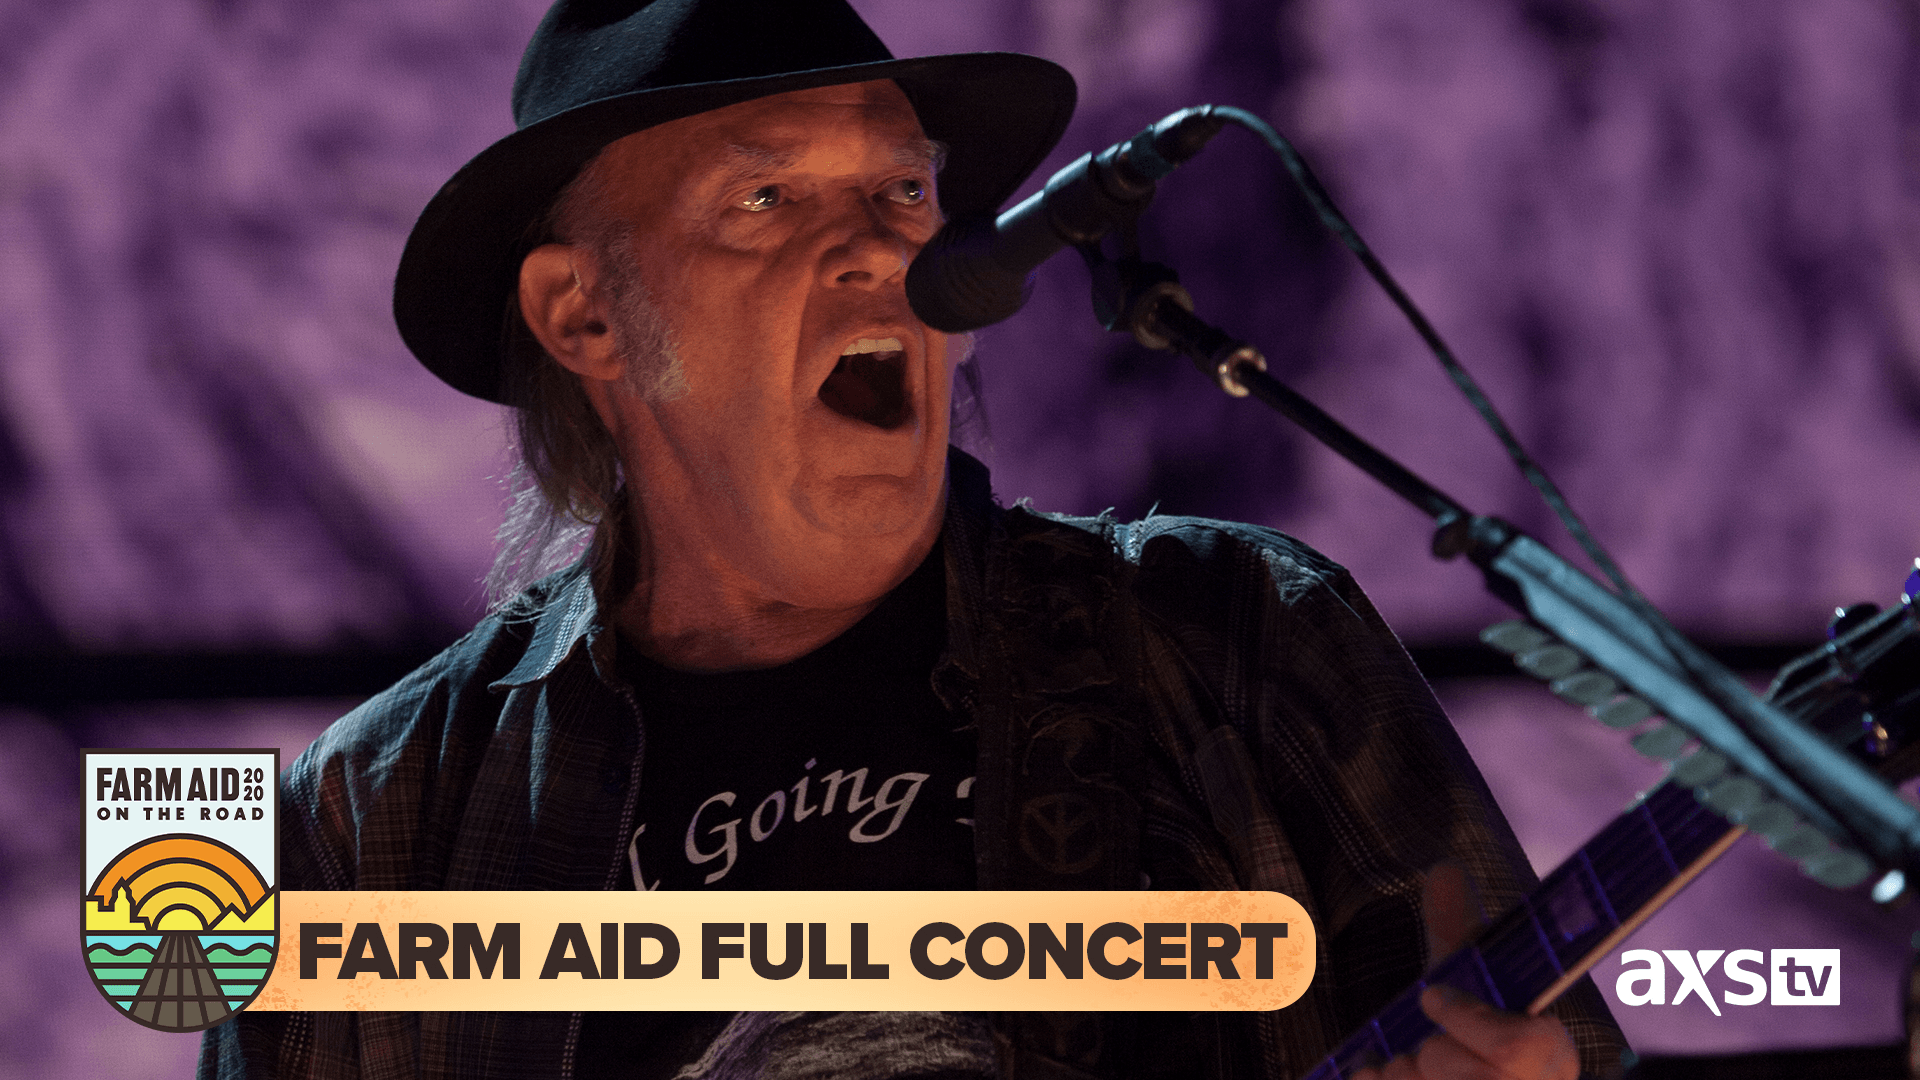 Farm Aid 2020 On The Road - Full Concert